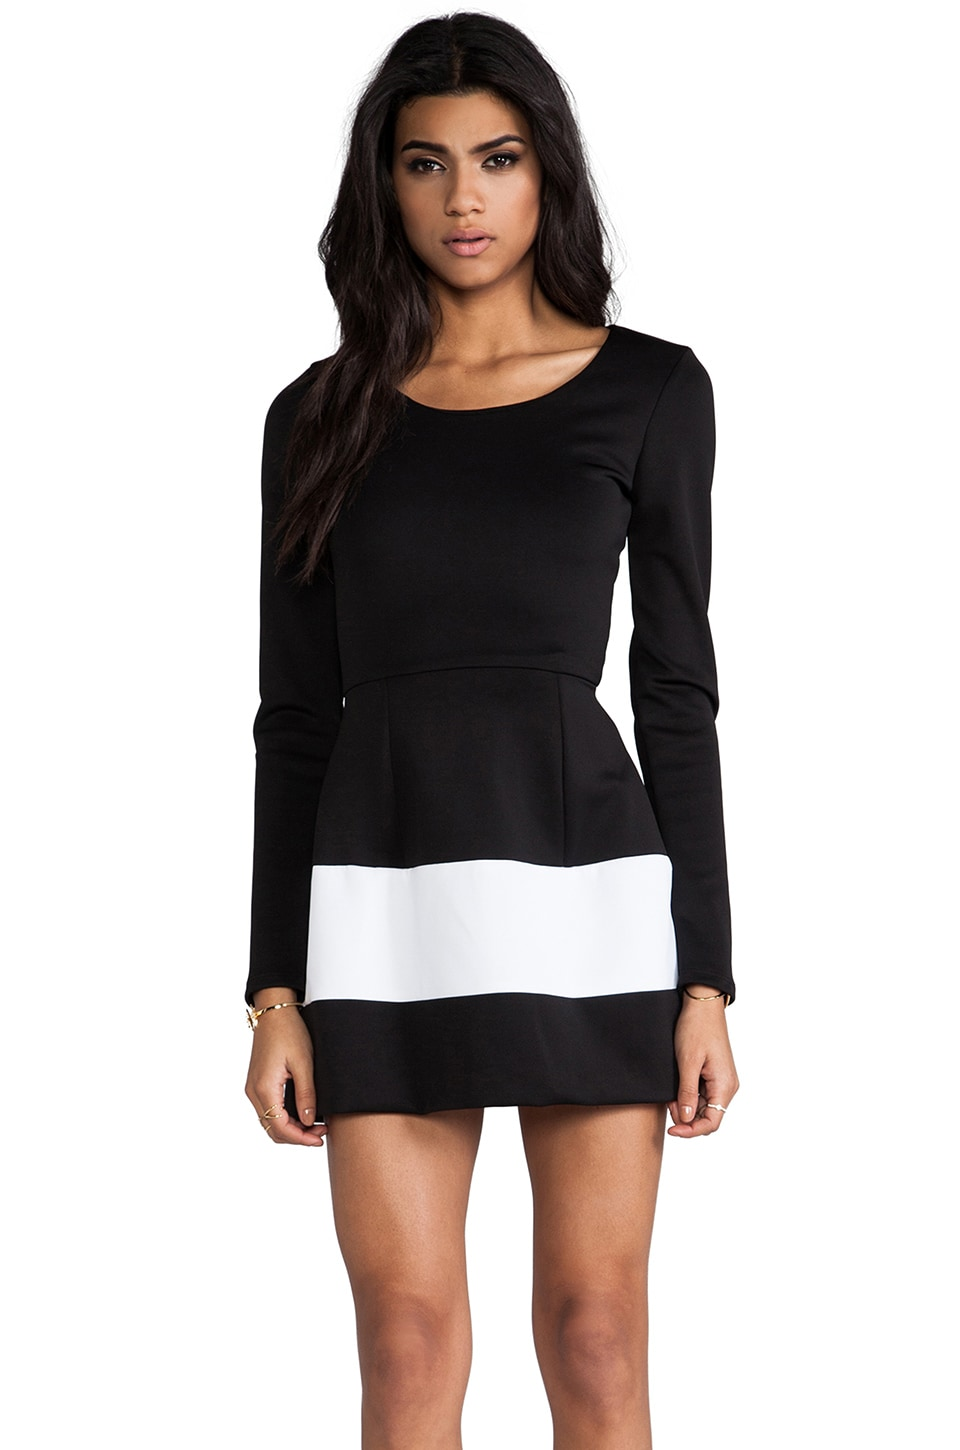 Boulee Marilyn Dress in Black/White